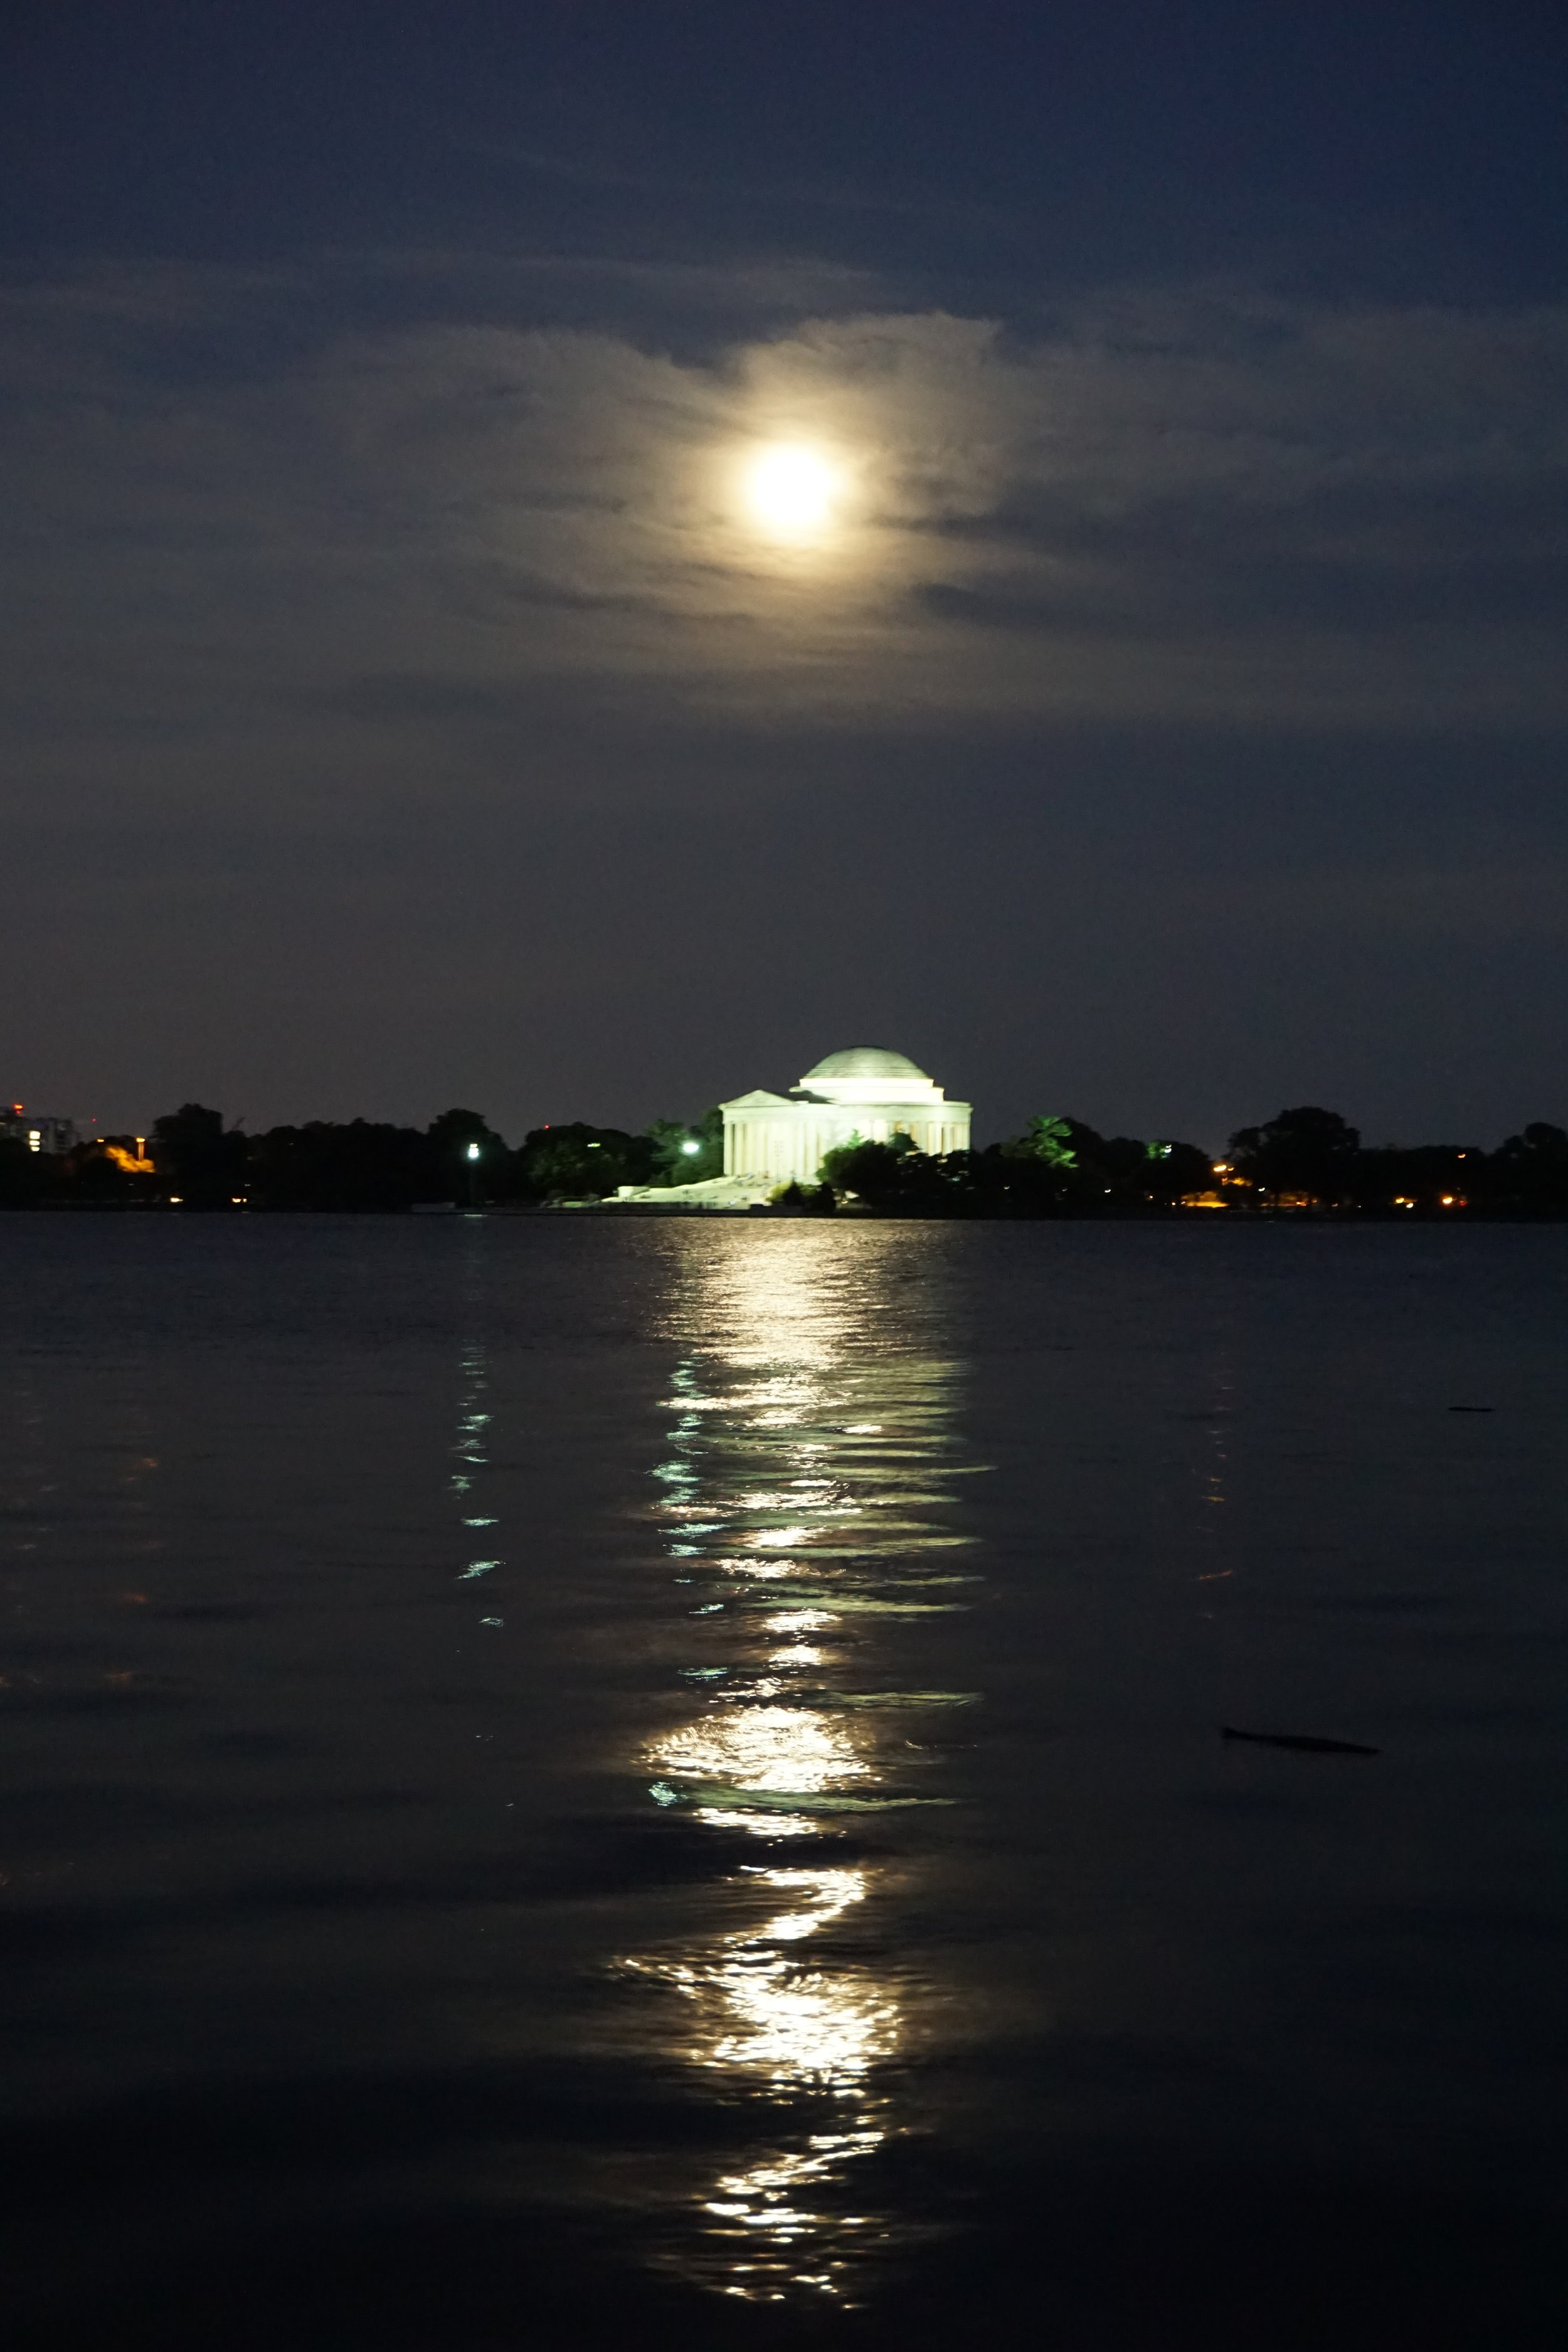 Jefferson Memorial across the water at night, Washington DC